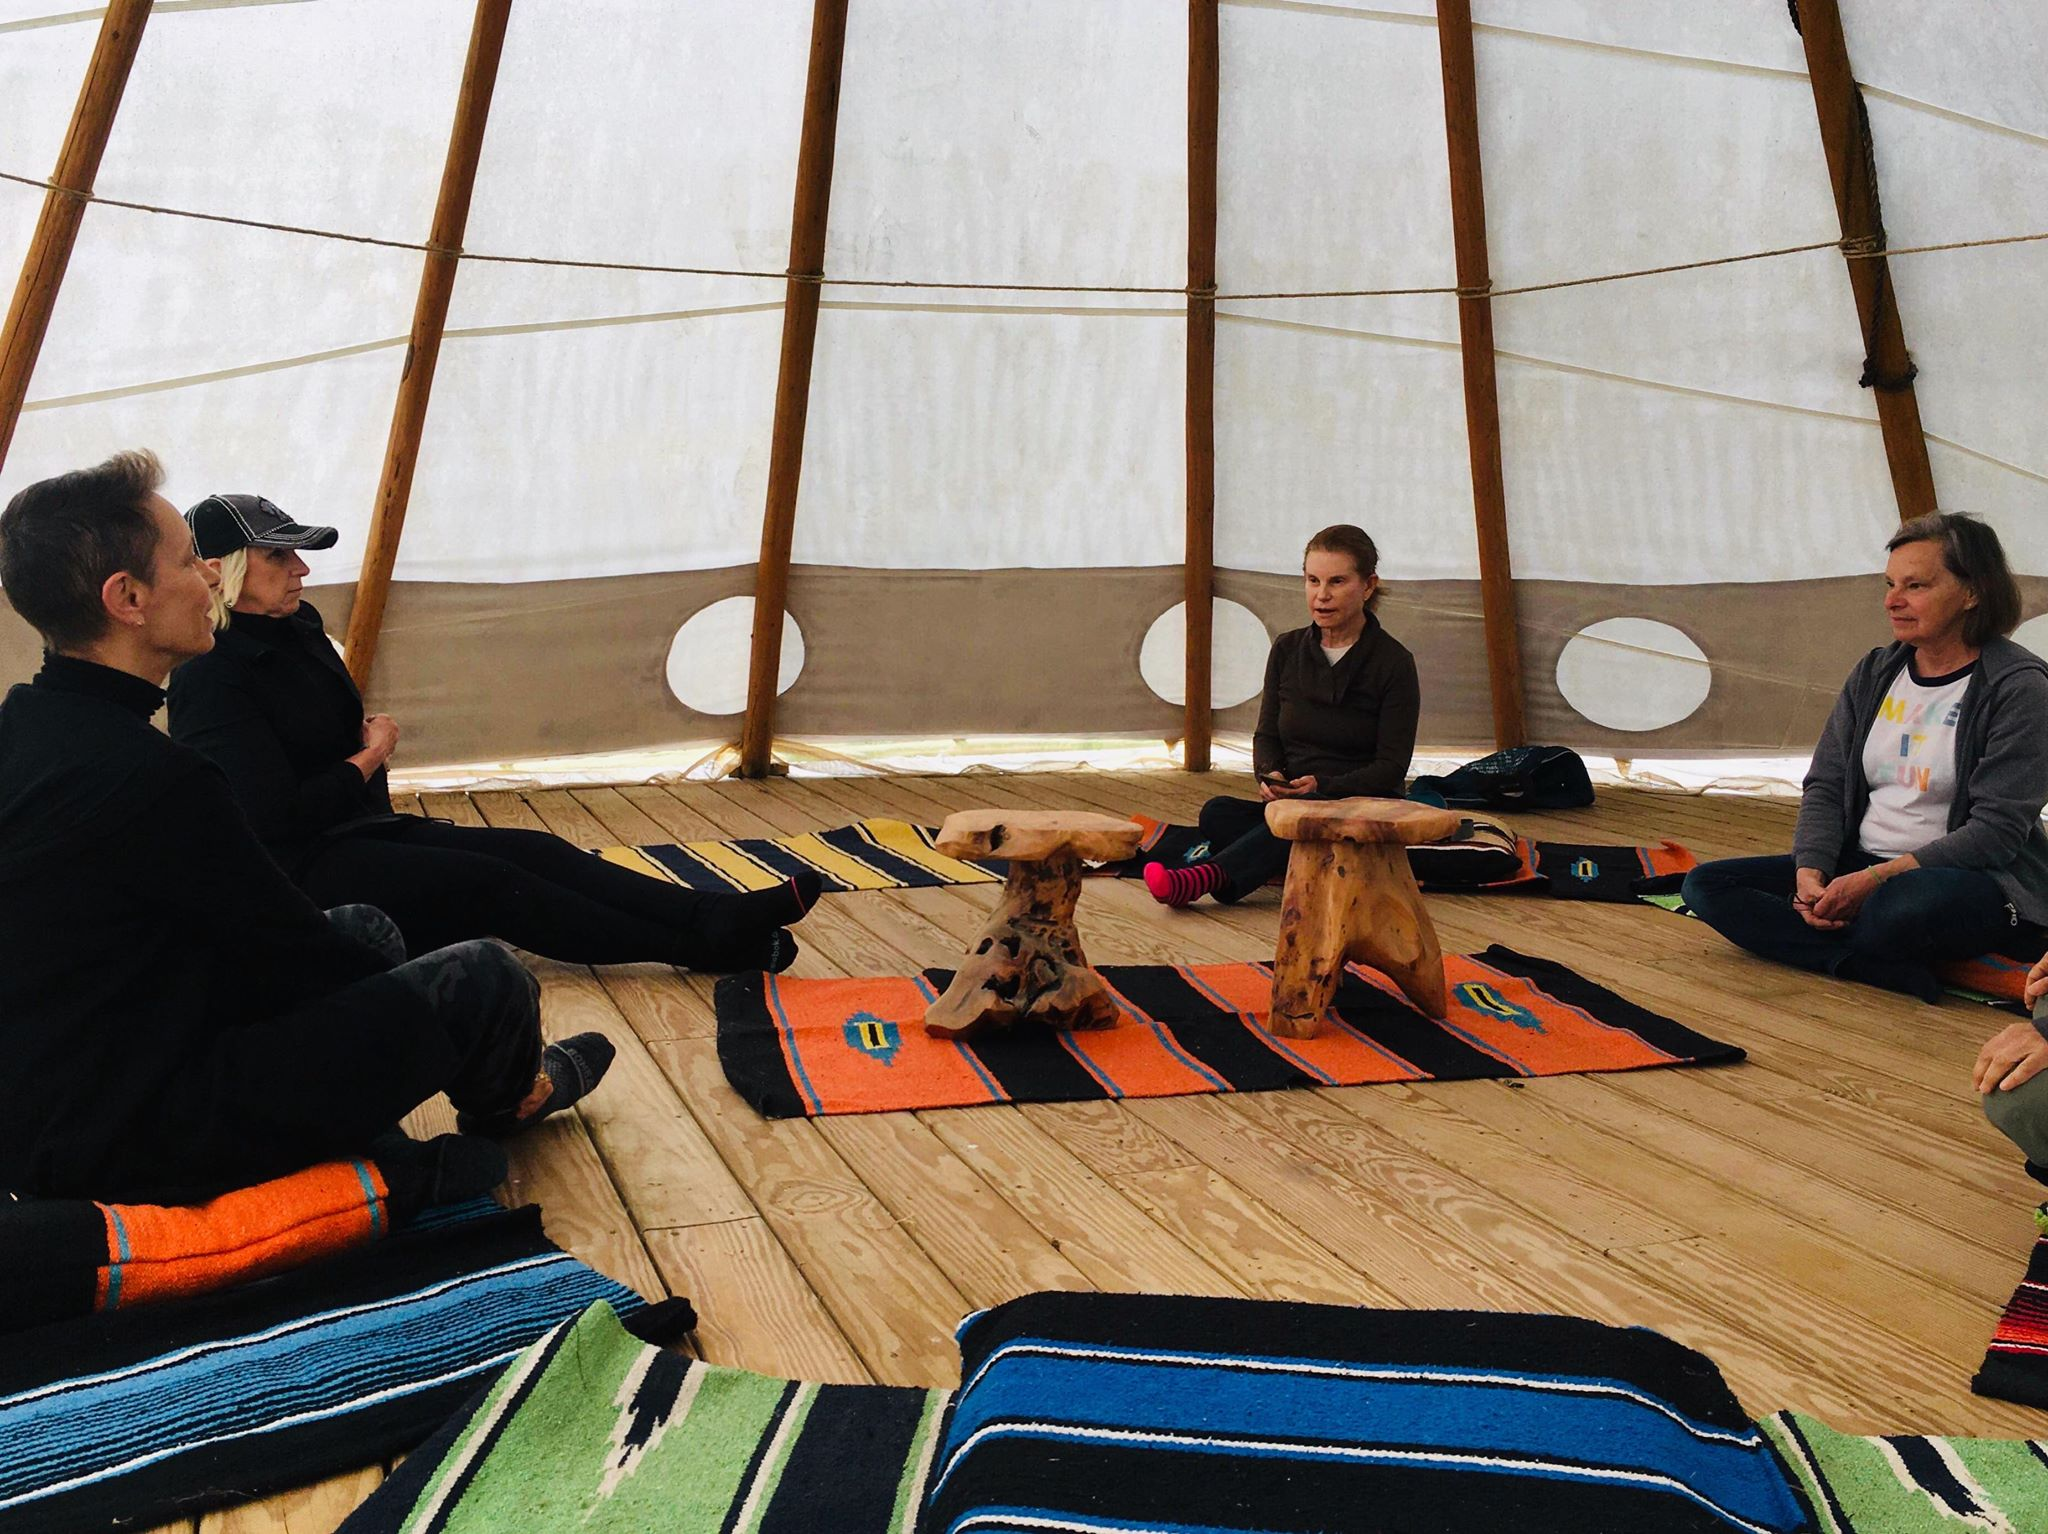 People gathering in a tipi